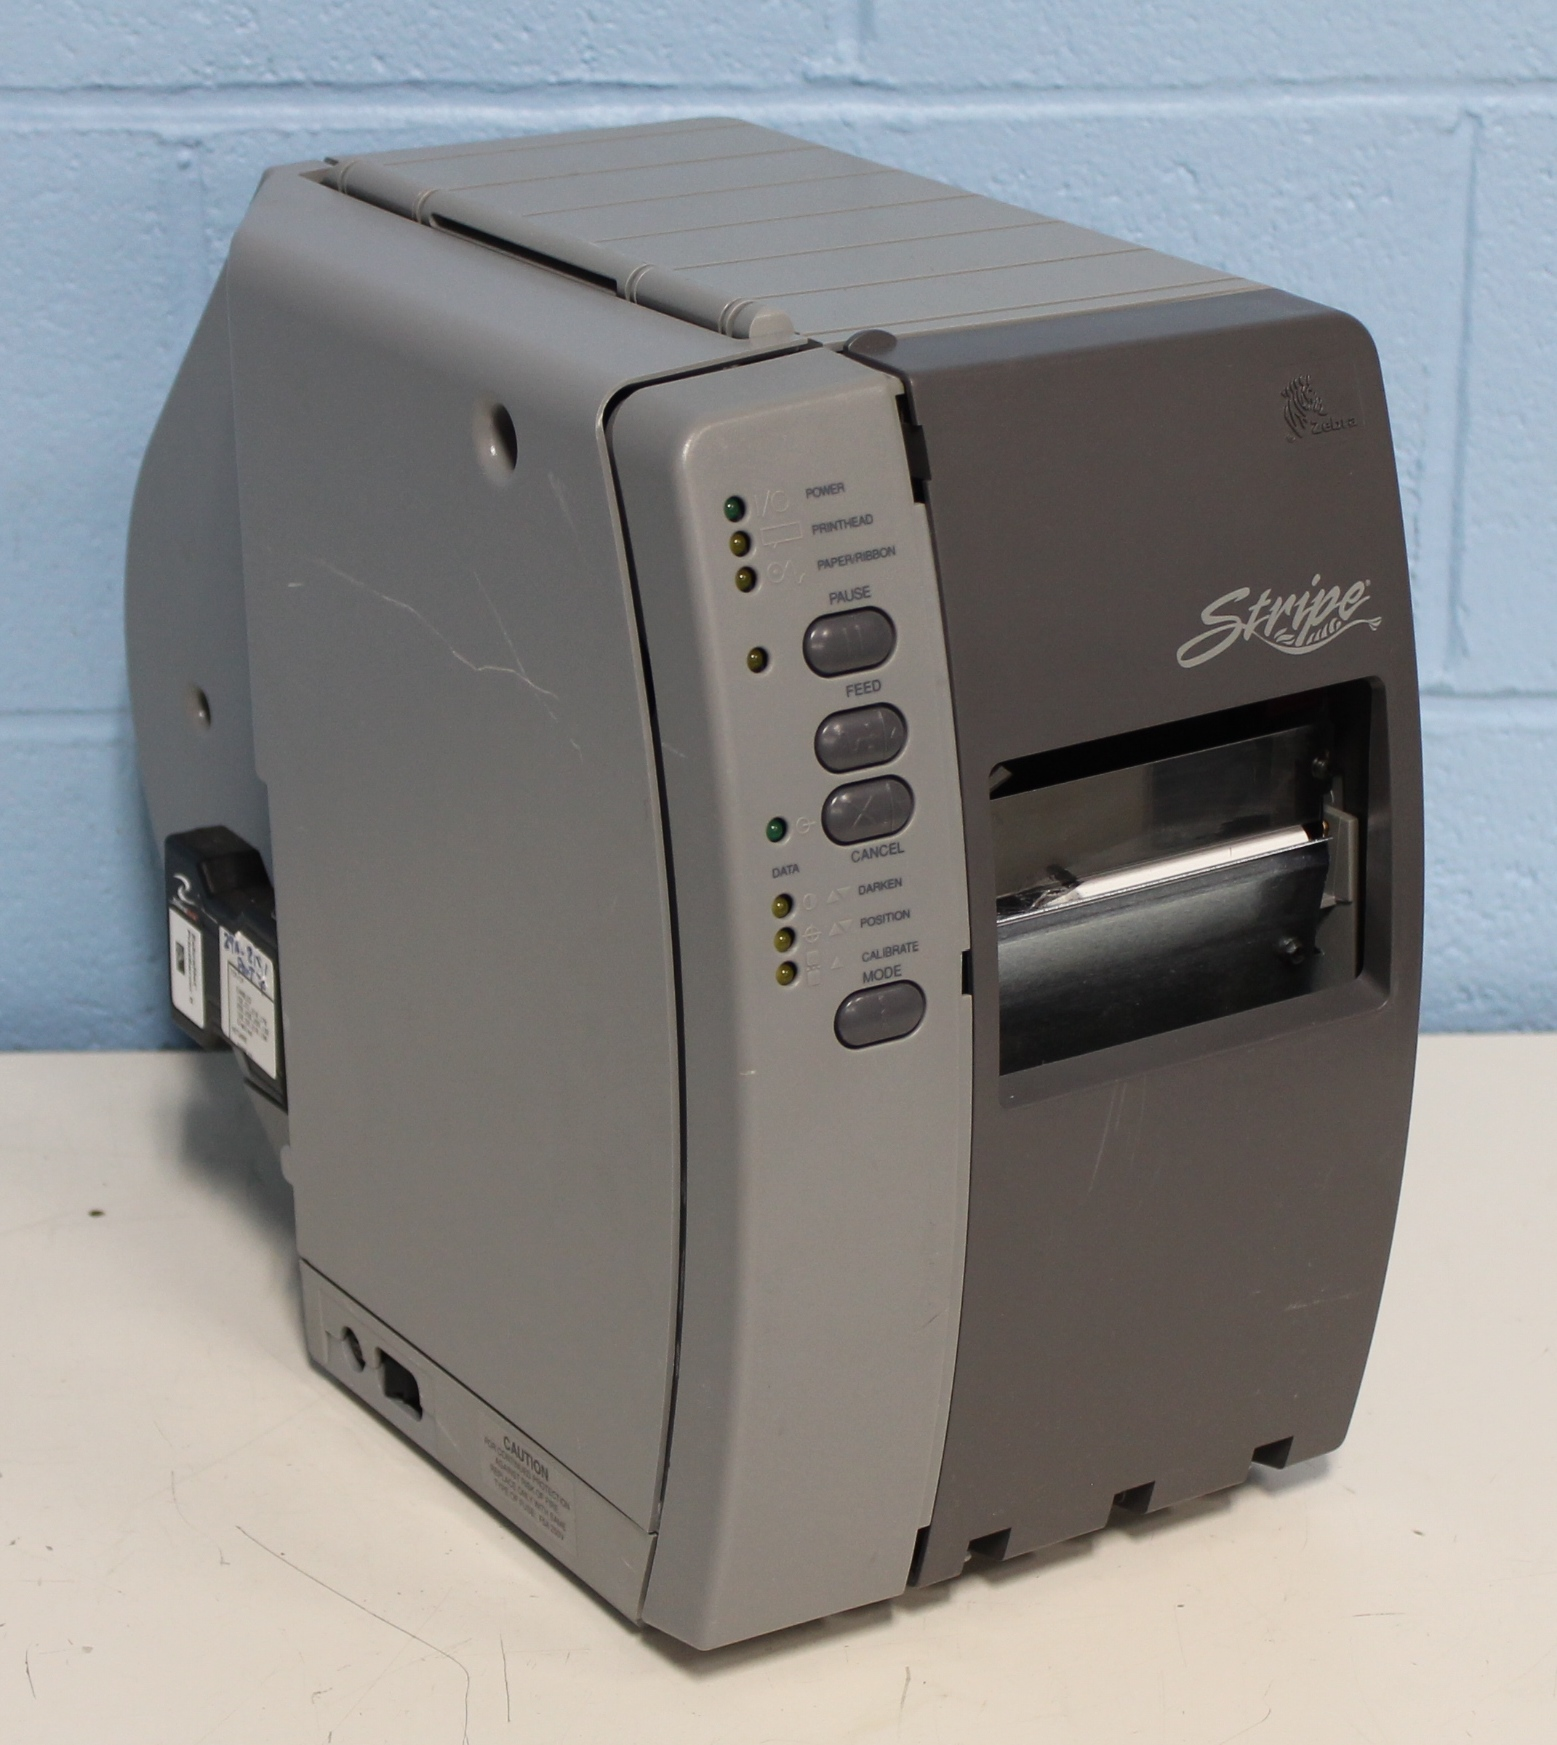 Refurbished Zebra Technologies Inc S600 Label Thermal Printer